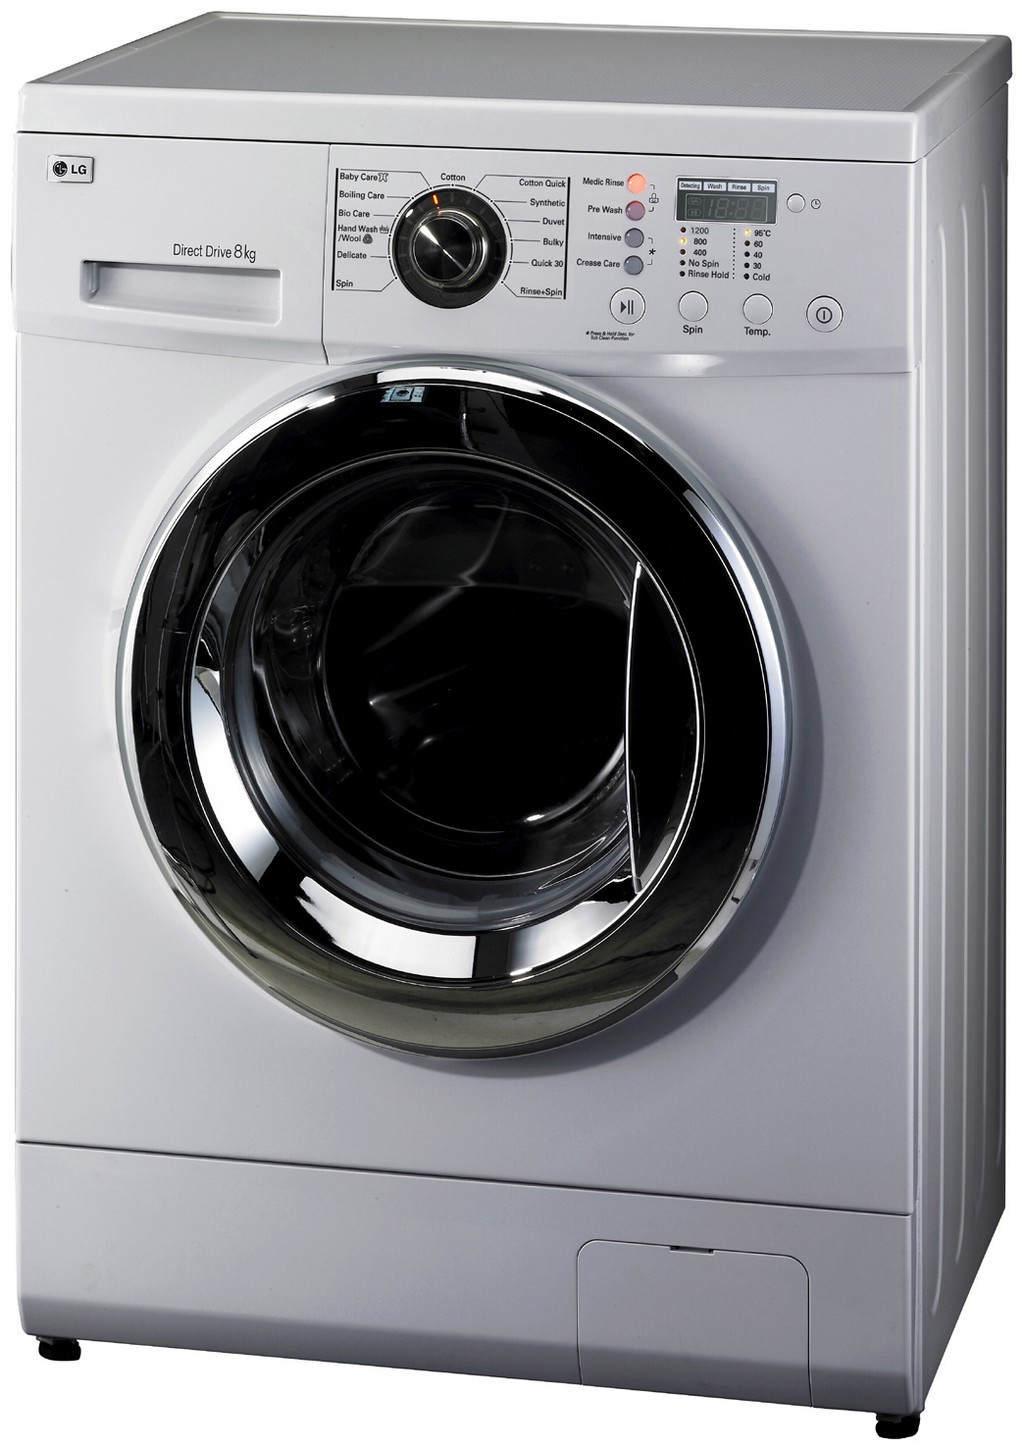 lg washing machine, which washing machine to buy, which washing machine to buy